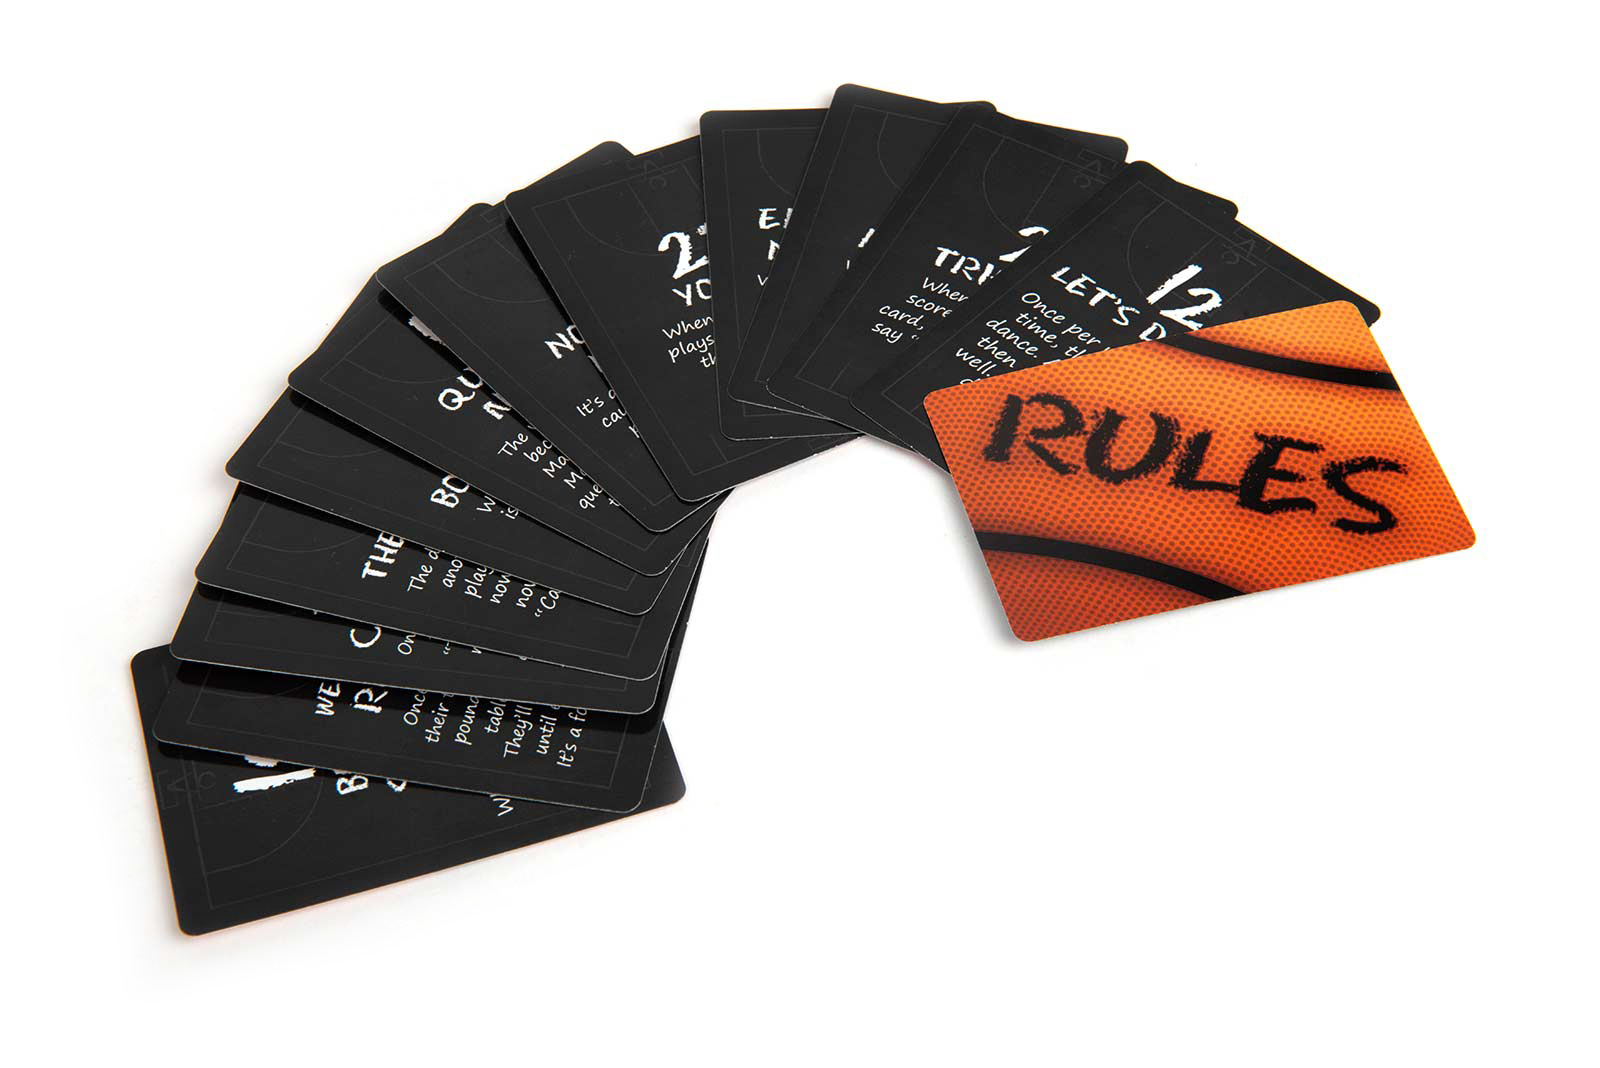 b-ball-blitz-family-party-game-rules-cards.jpg